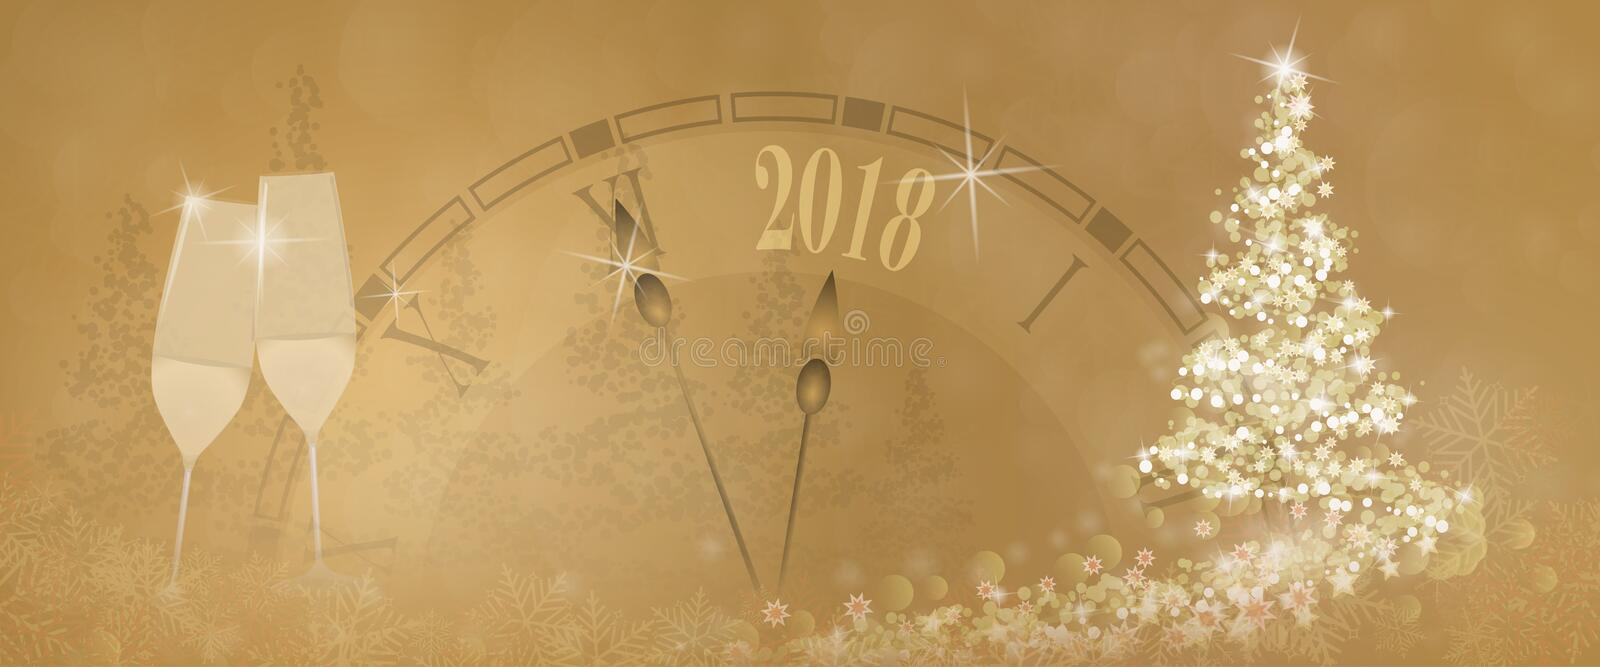 Happy New Year - clock and glasses royalty free illustration